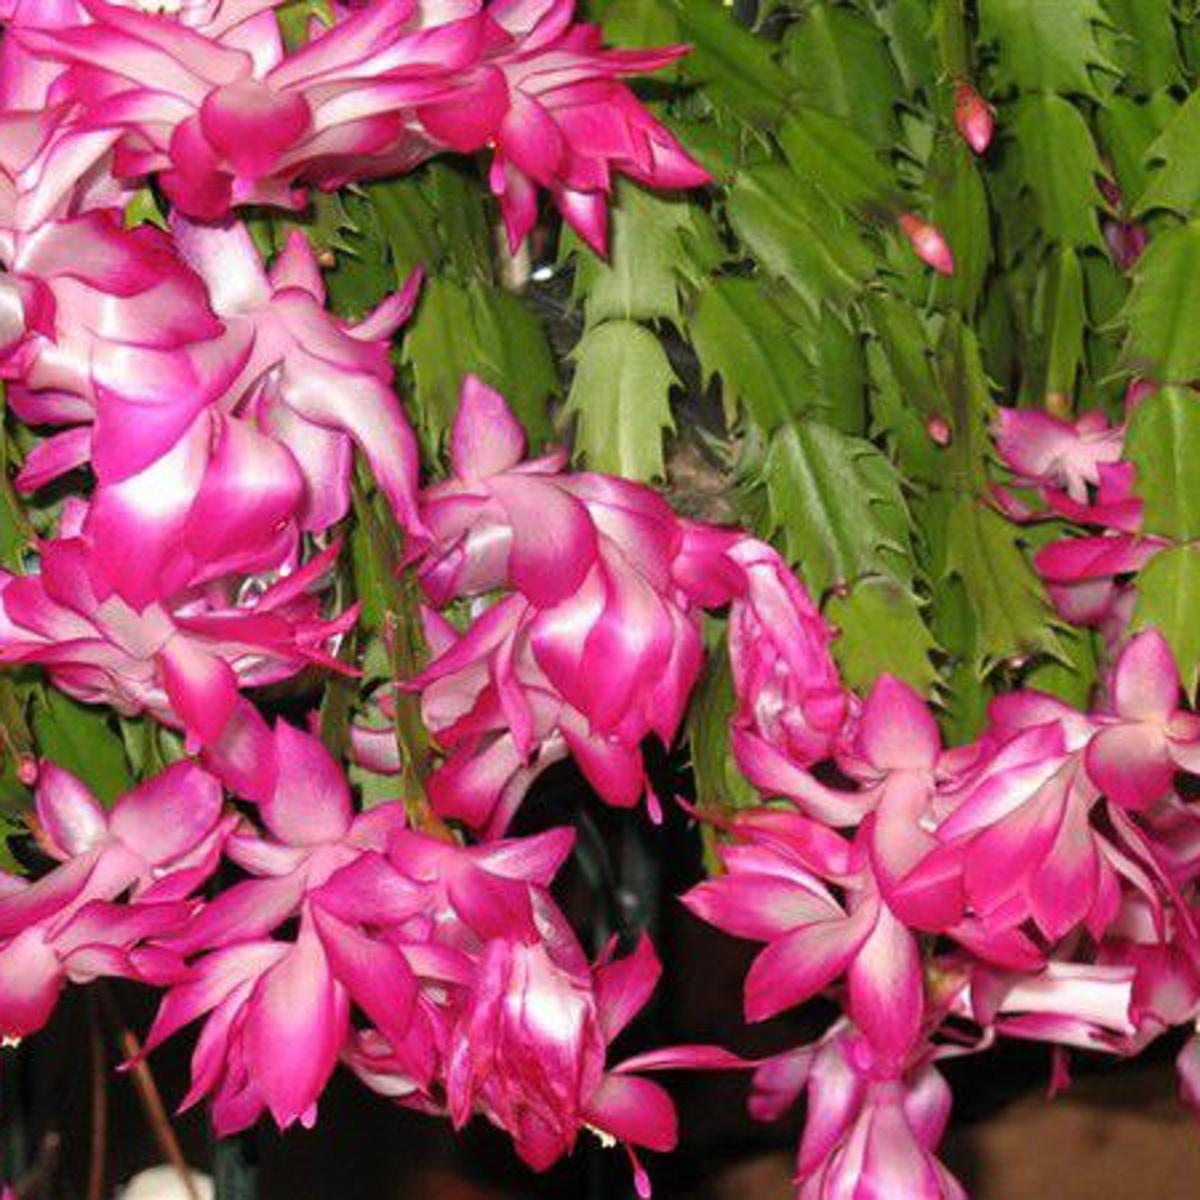 How To Get A Christmas Cactus To Bloom.How To Get A Christmas Cactus To Bloom Home Garden Nola Com